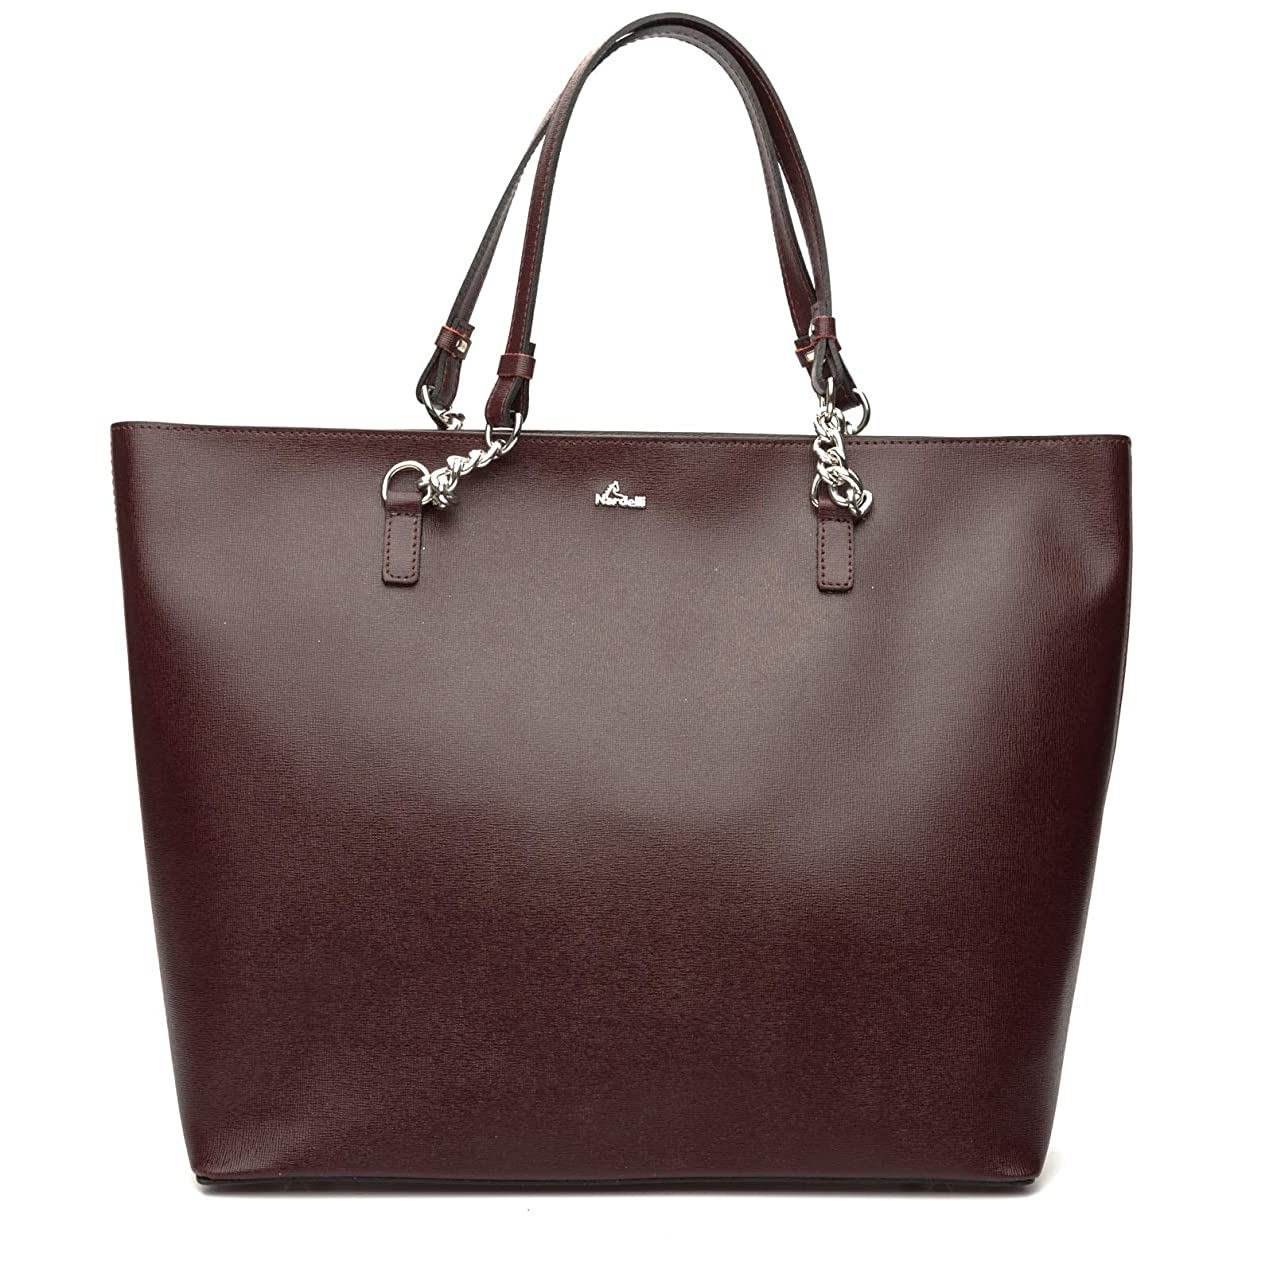 Hard leather bag to carry on the shoulder with handles in leather and chain.If with zip and completely unlined provides inside a pocket for objects.